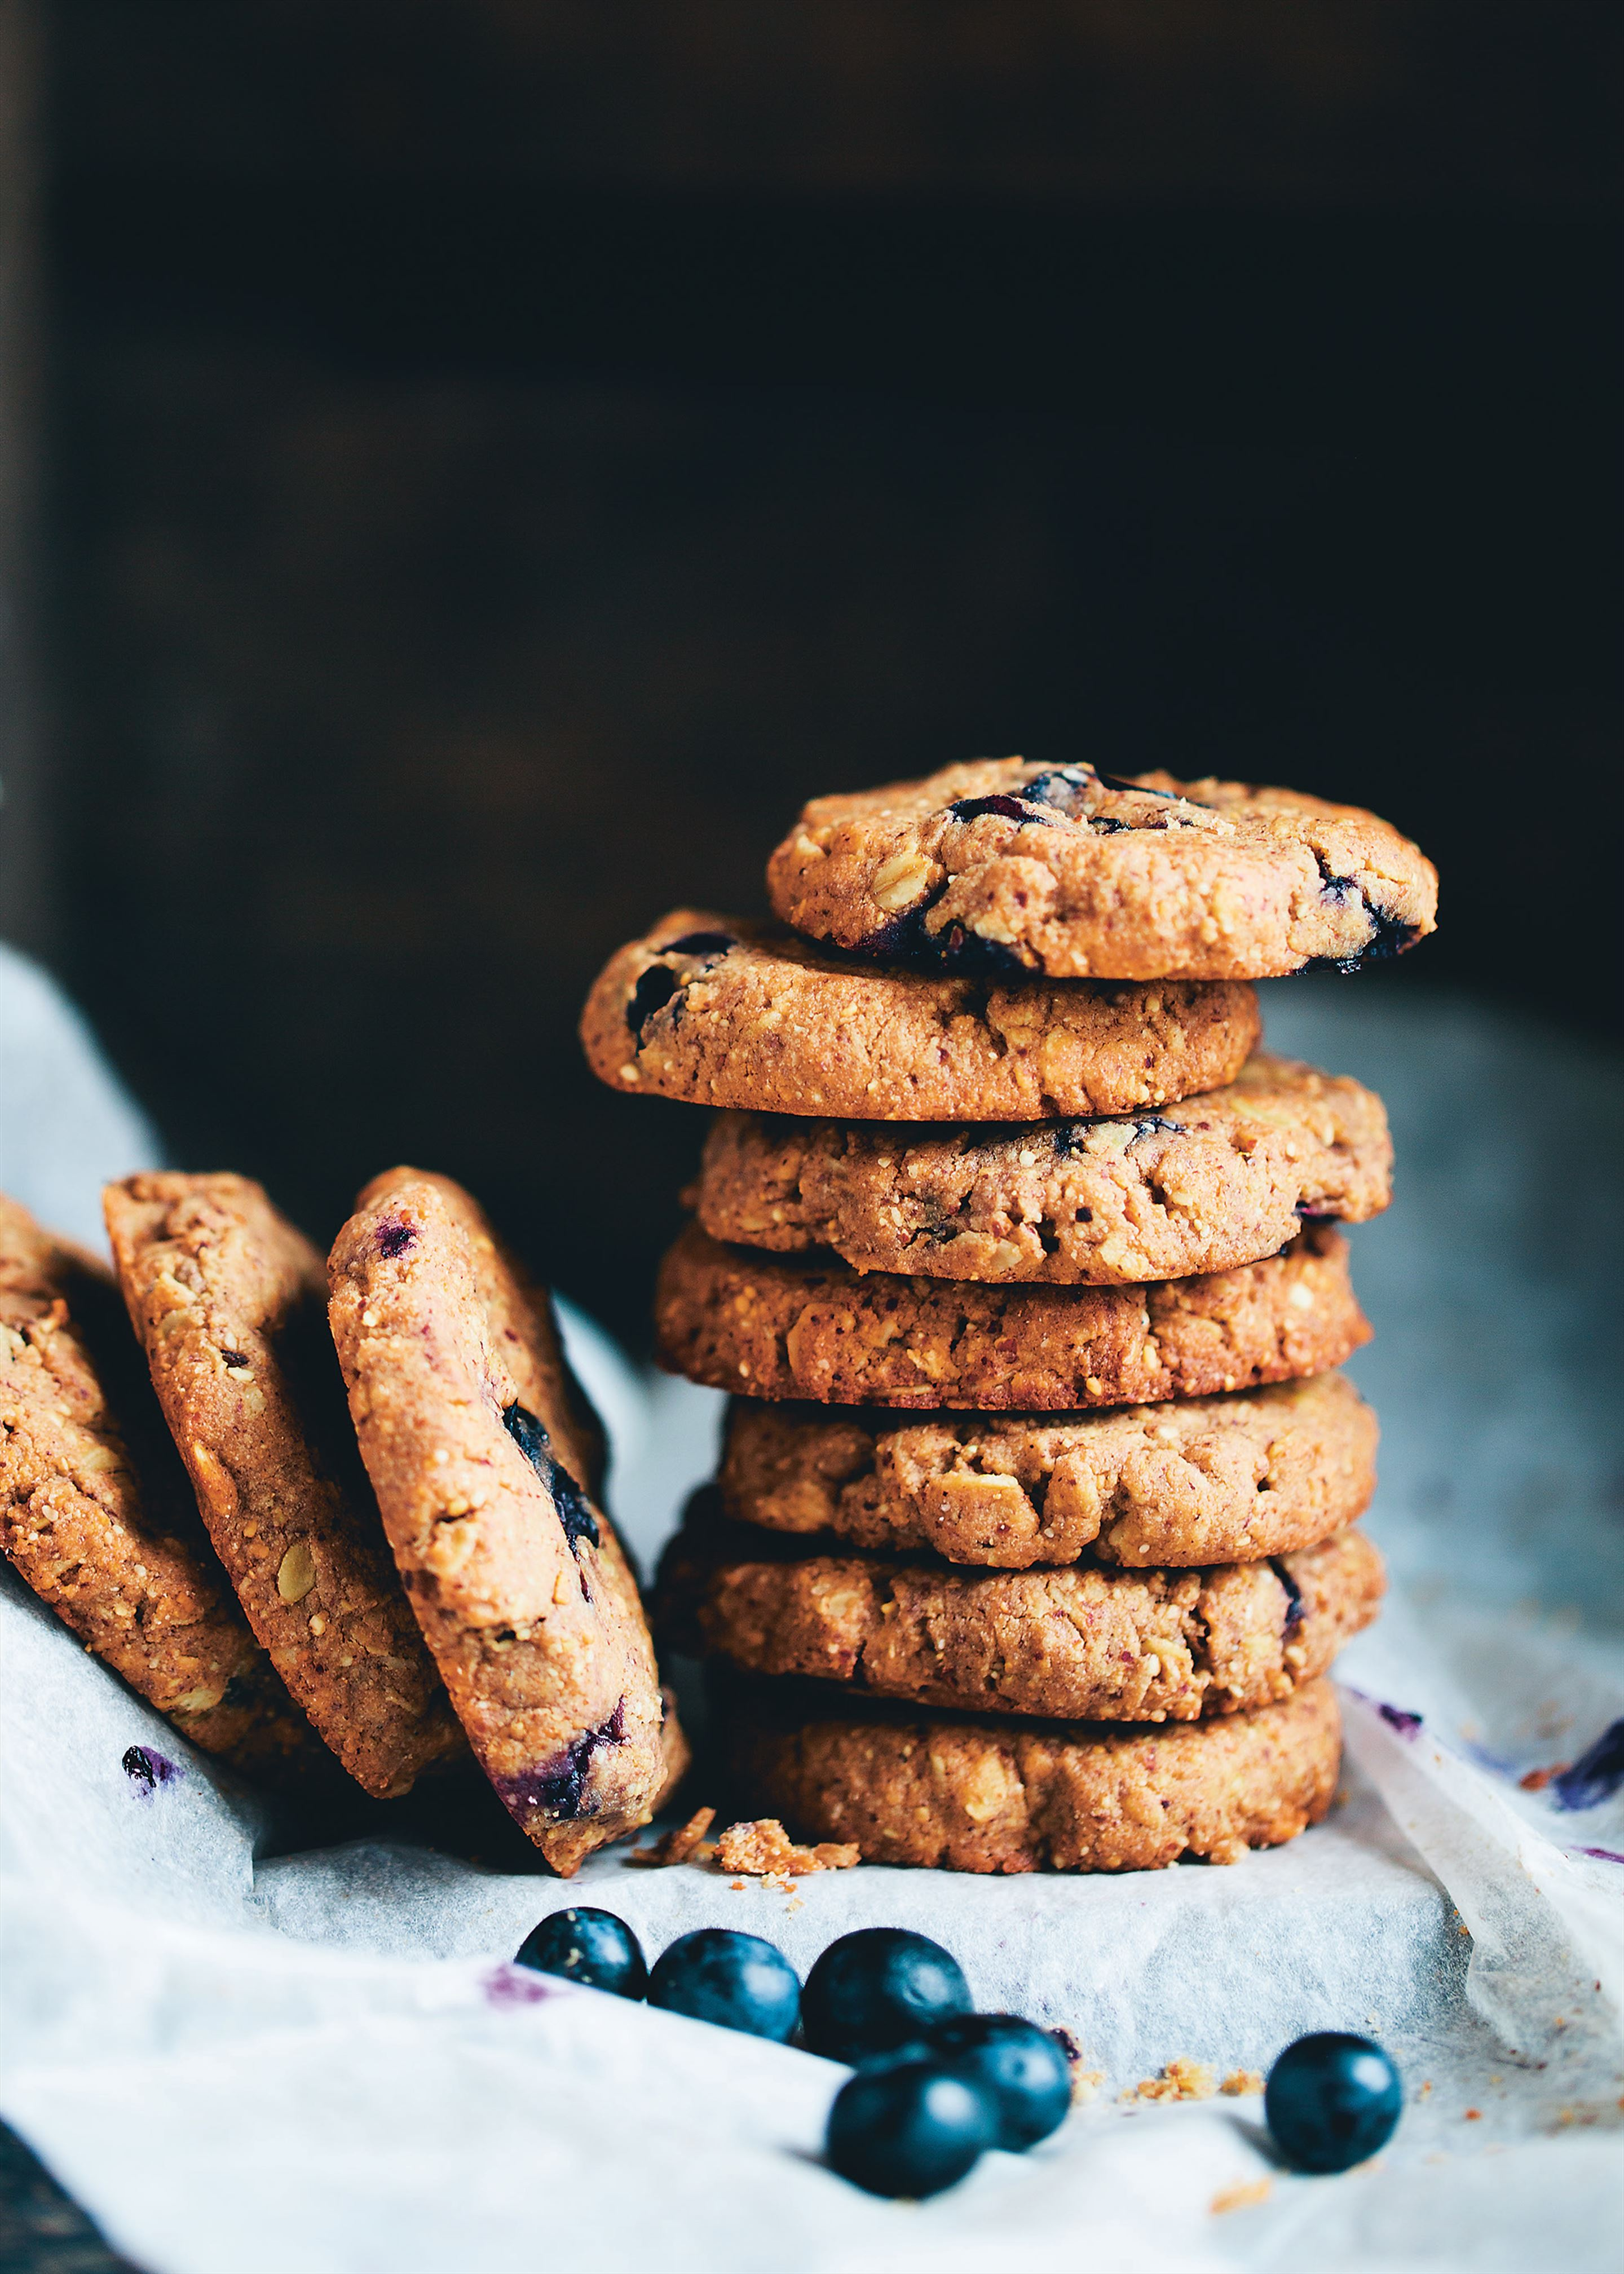 Almond butter blueberry cookies